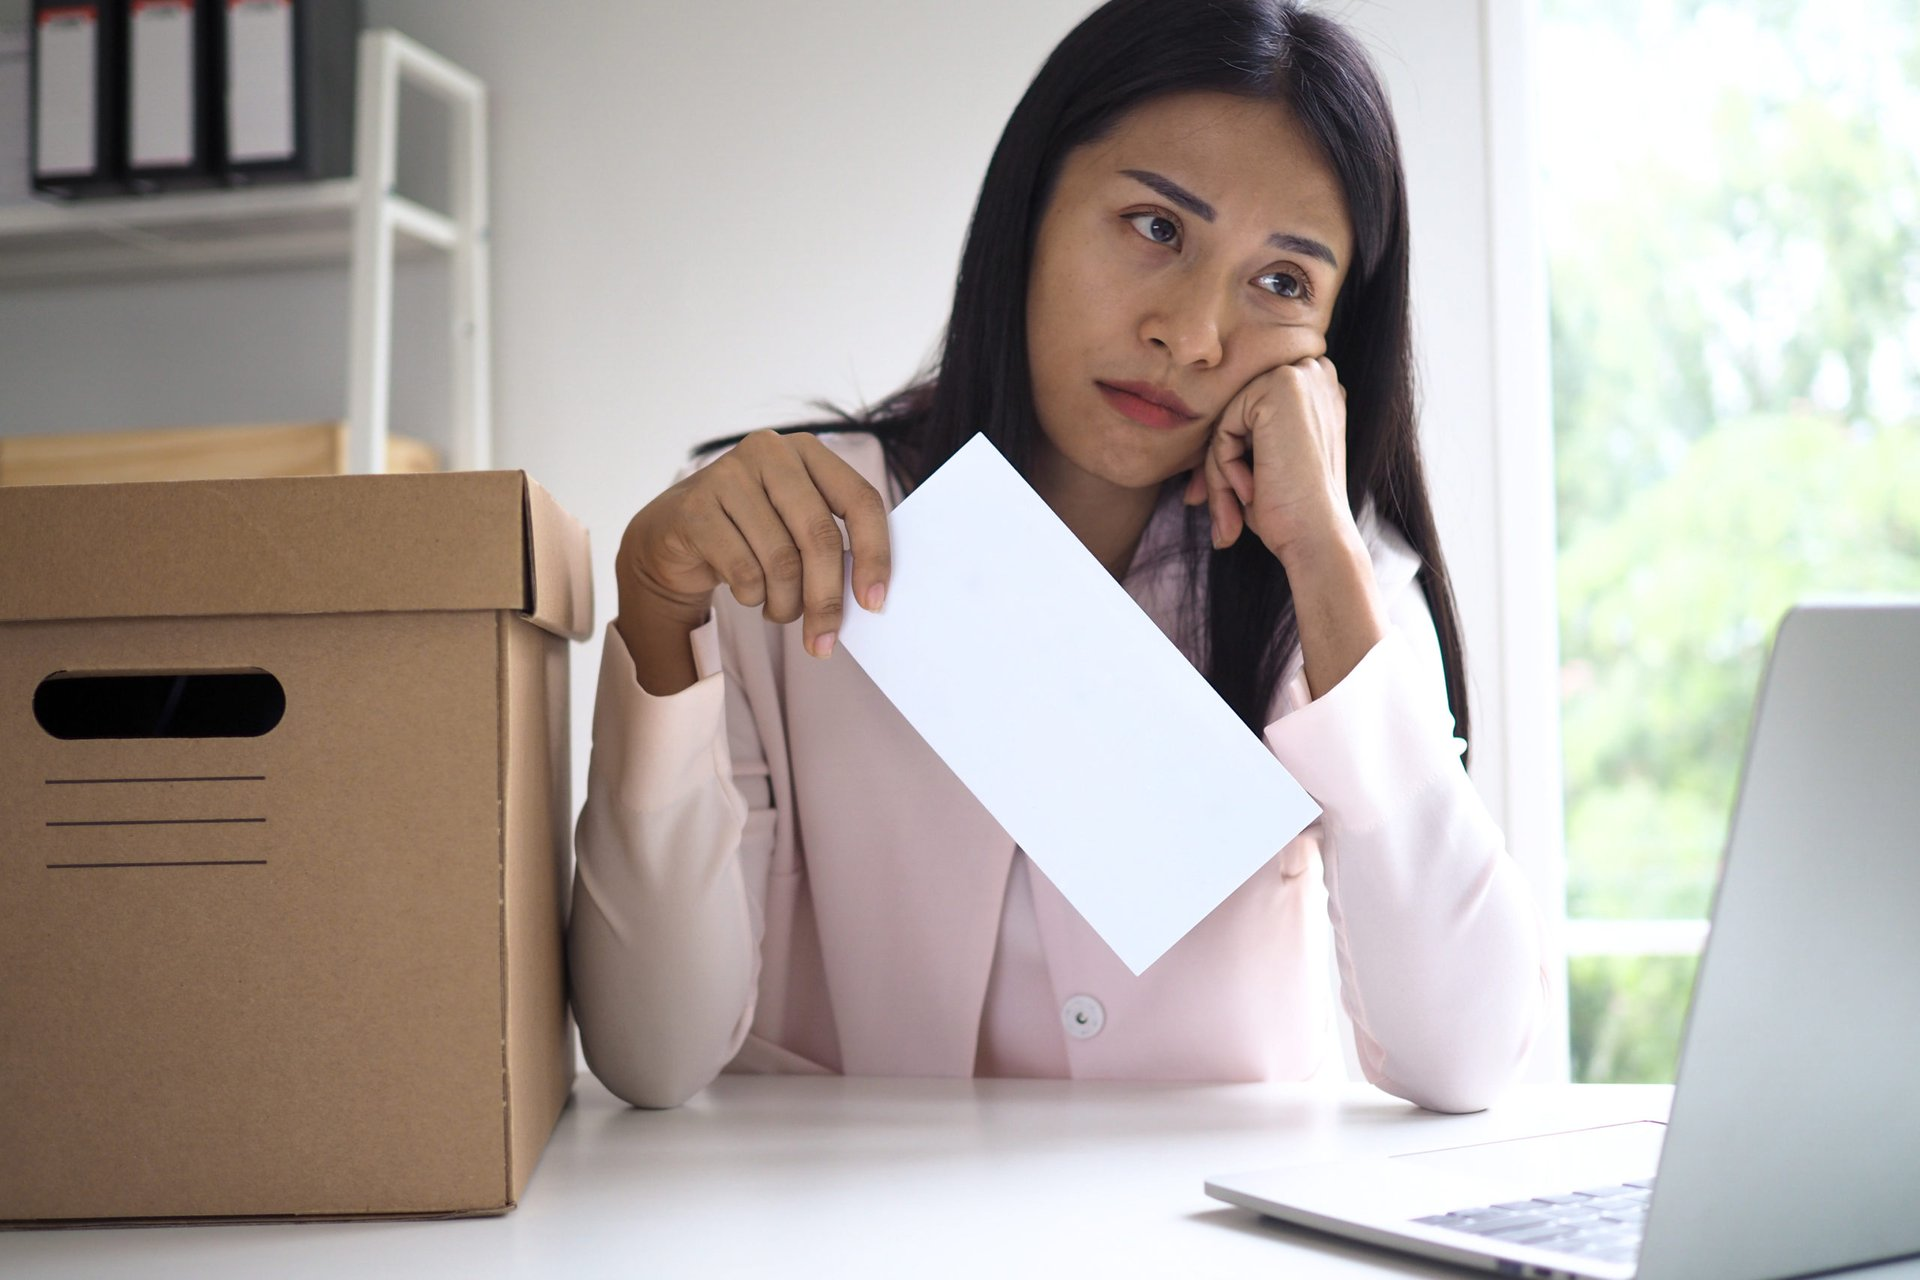 Unhappy woman with envelope